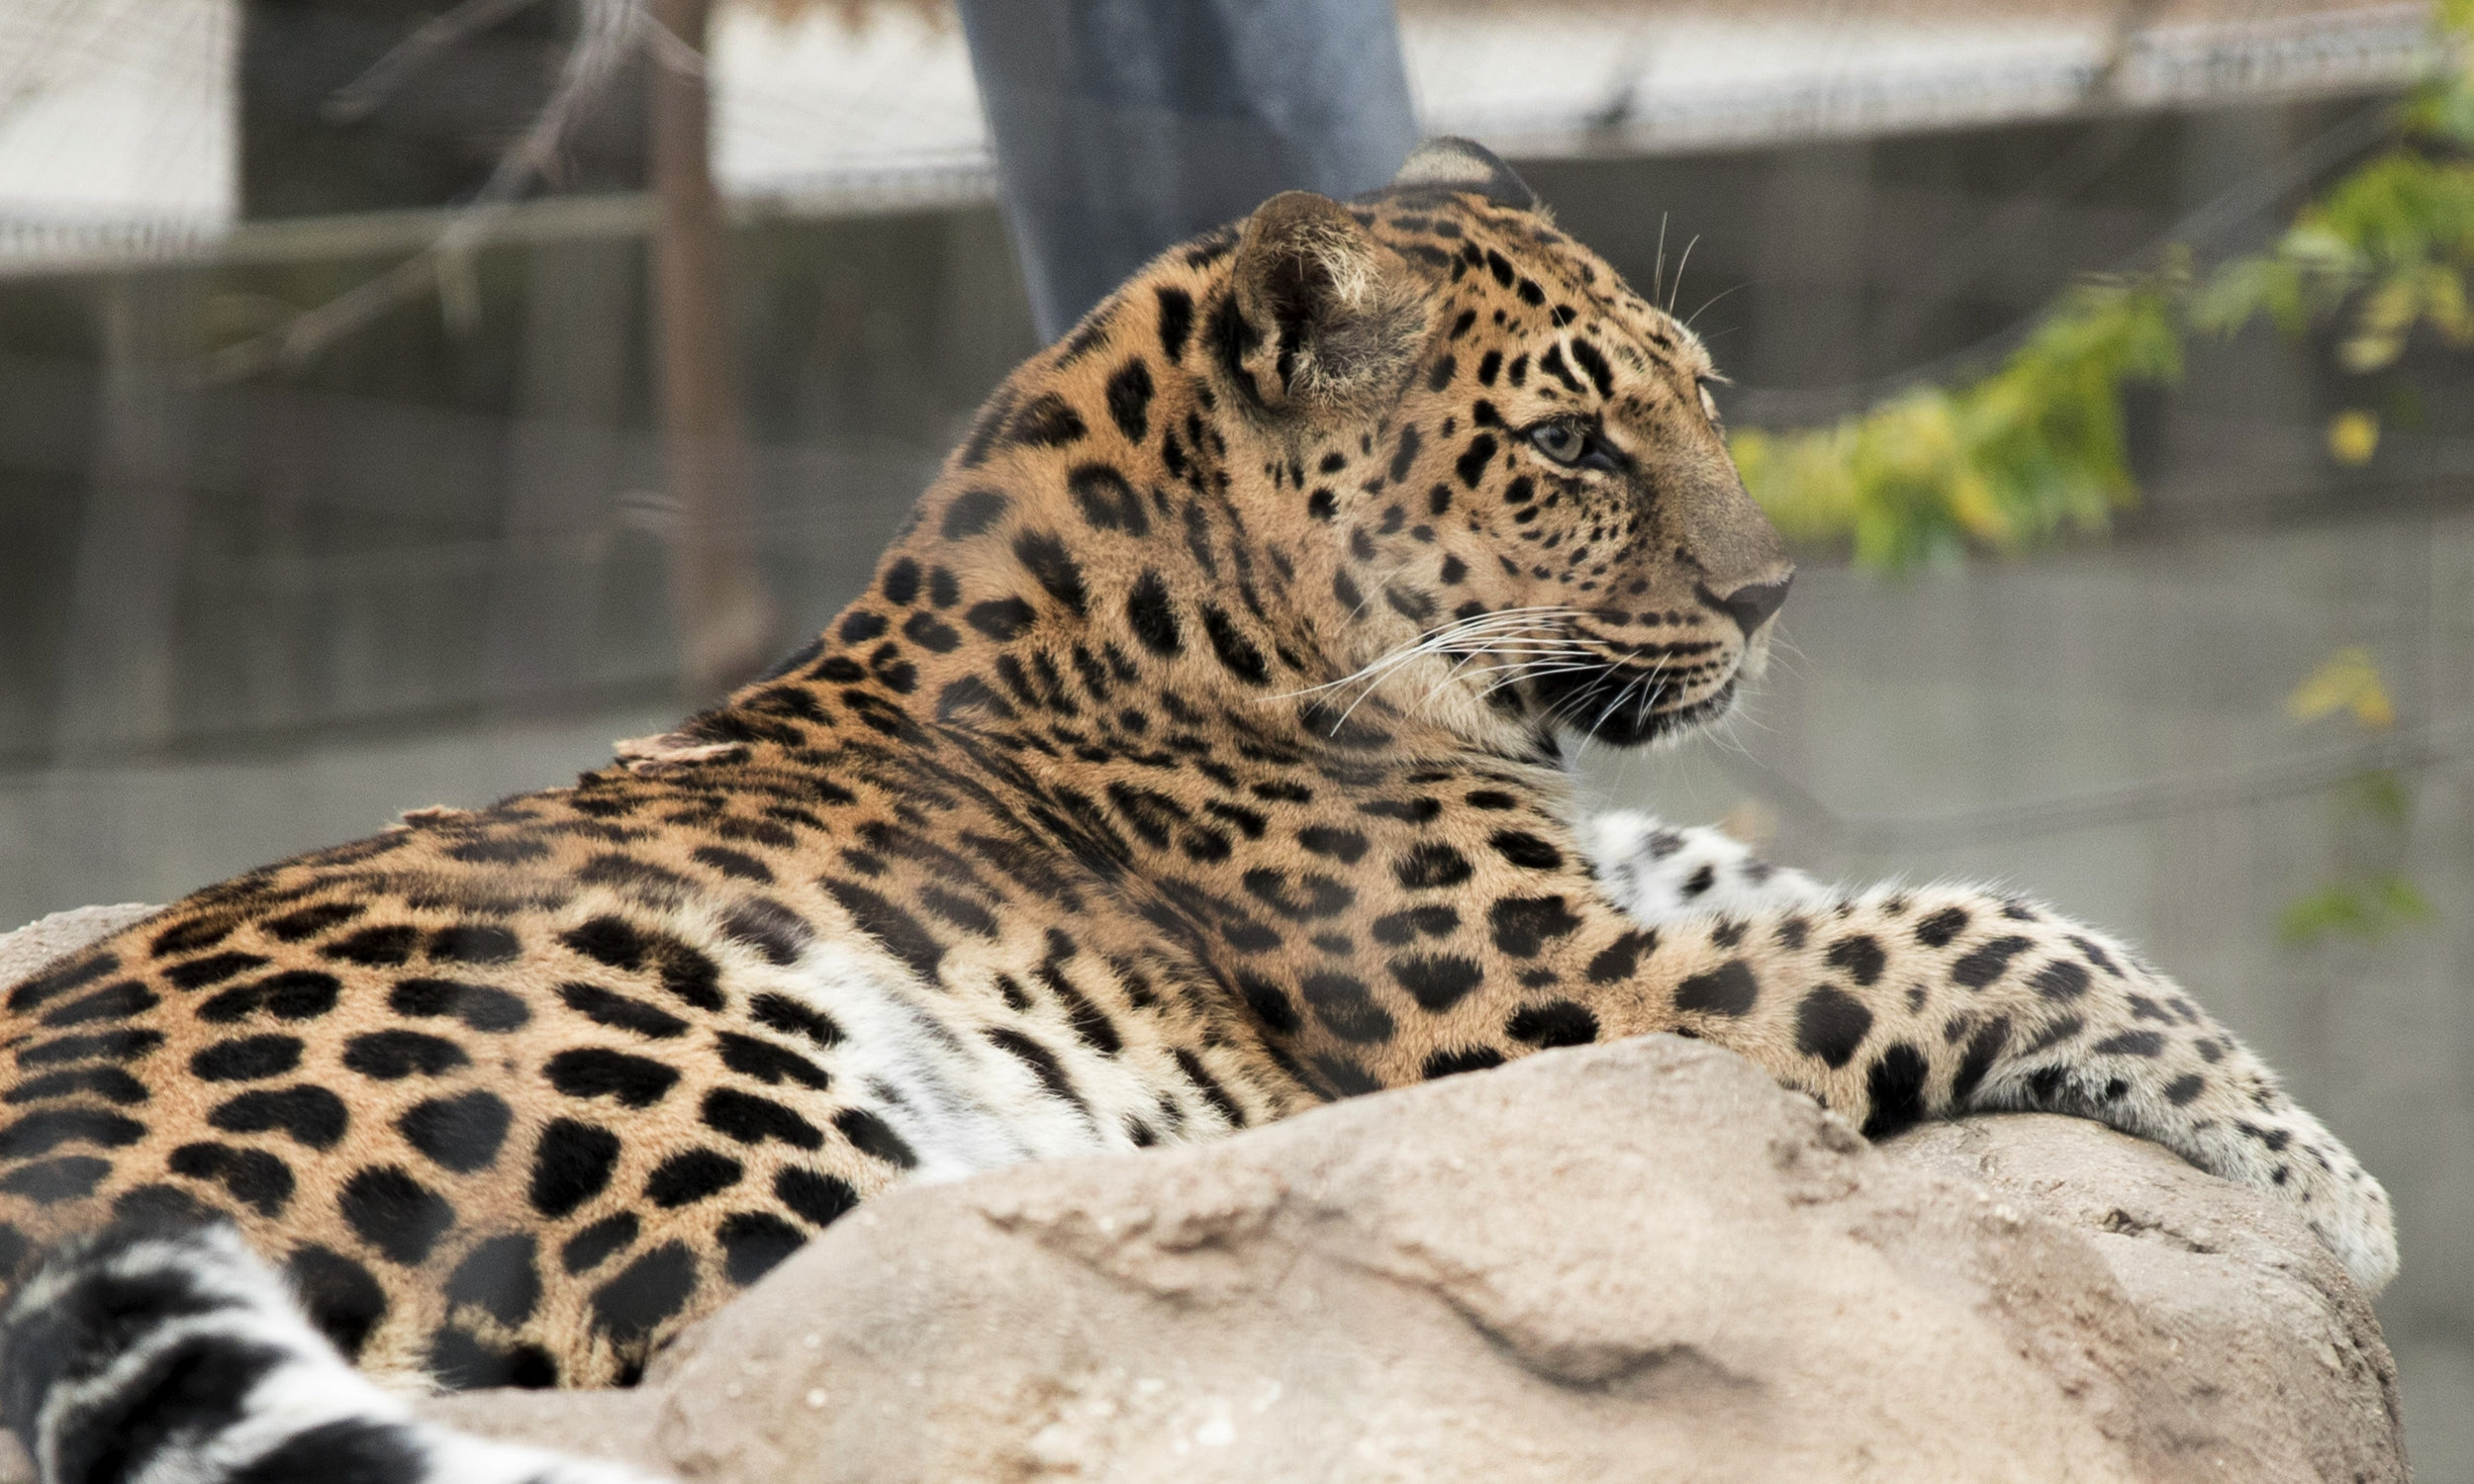 Saint_Louis_Zoo_Photography_Cat.jpg